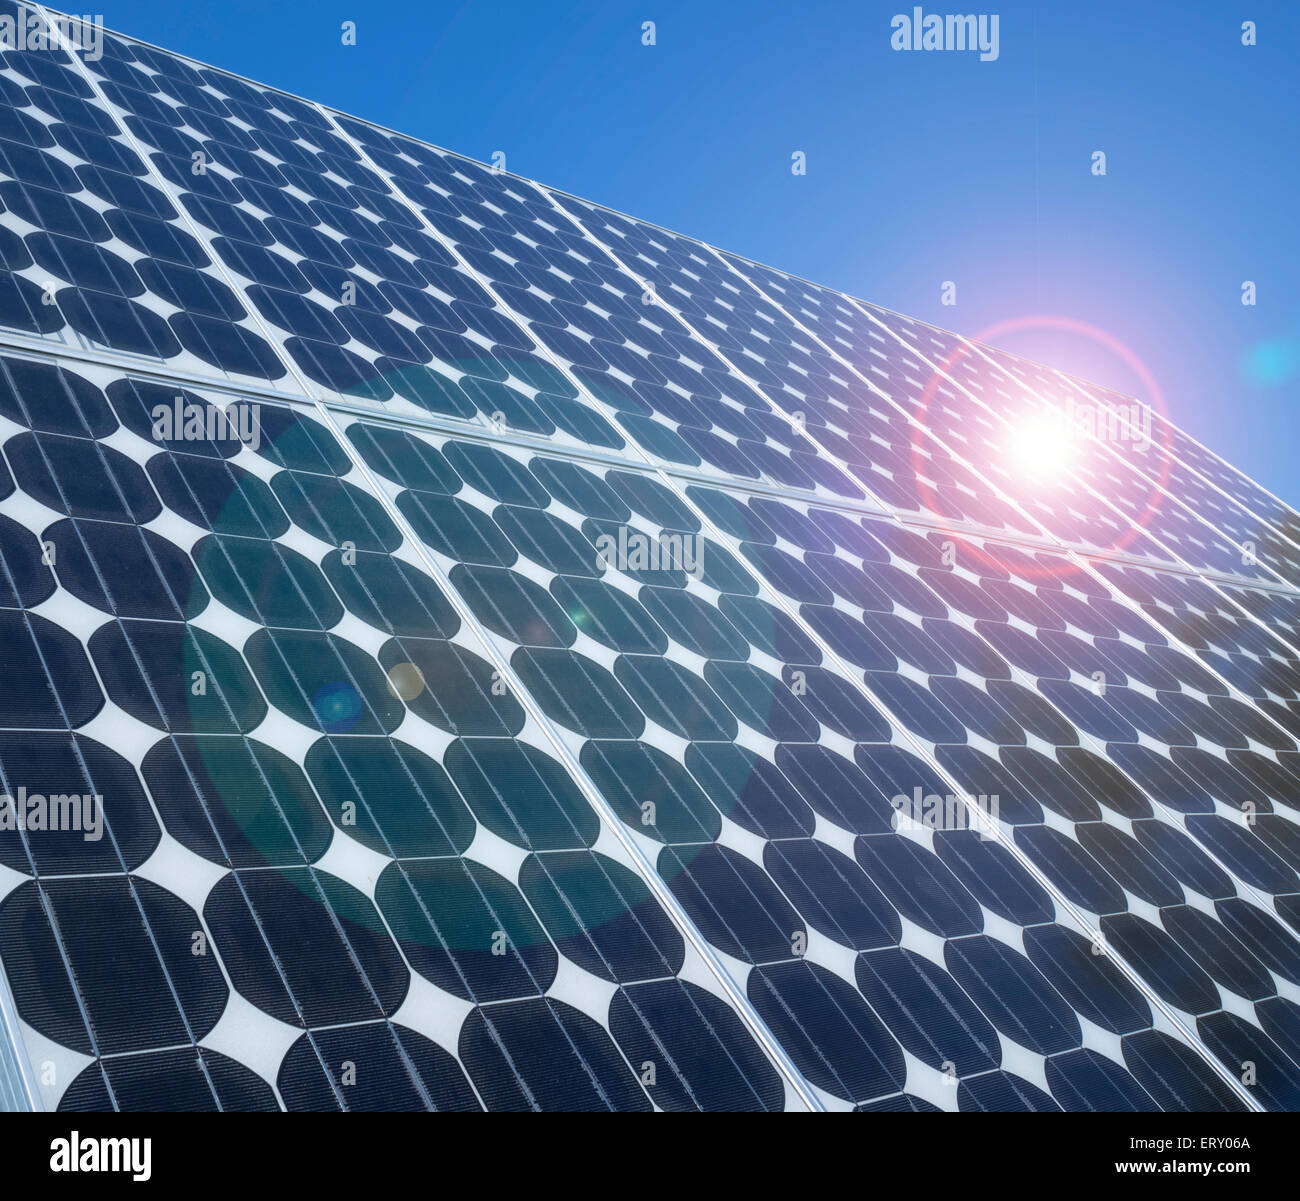 photovoltaic-cells-array-close-up-blue-lens-flare-sunlight-reflection-ERY06A.jpg